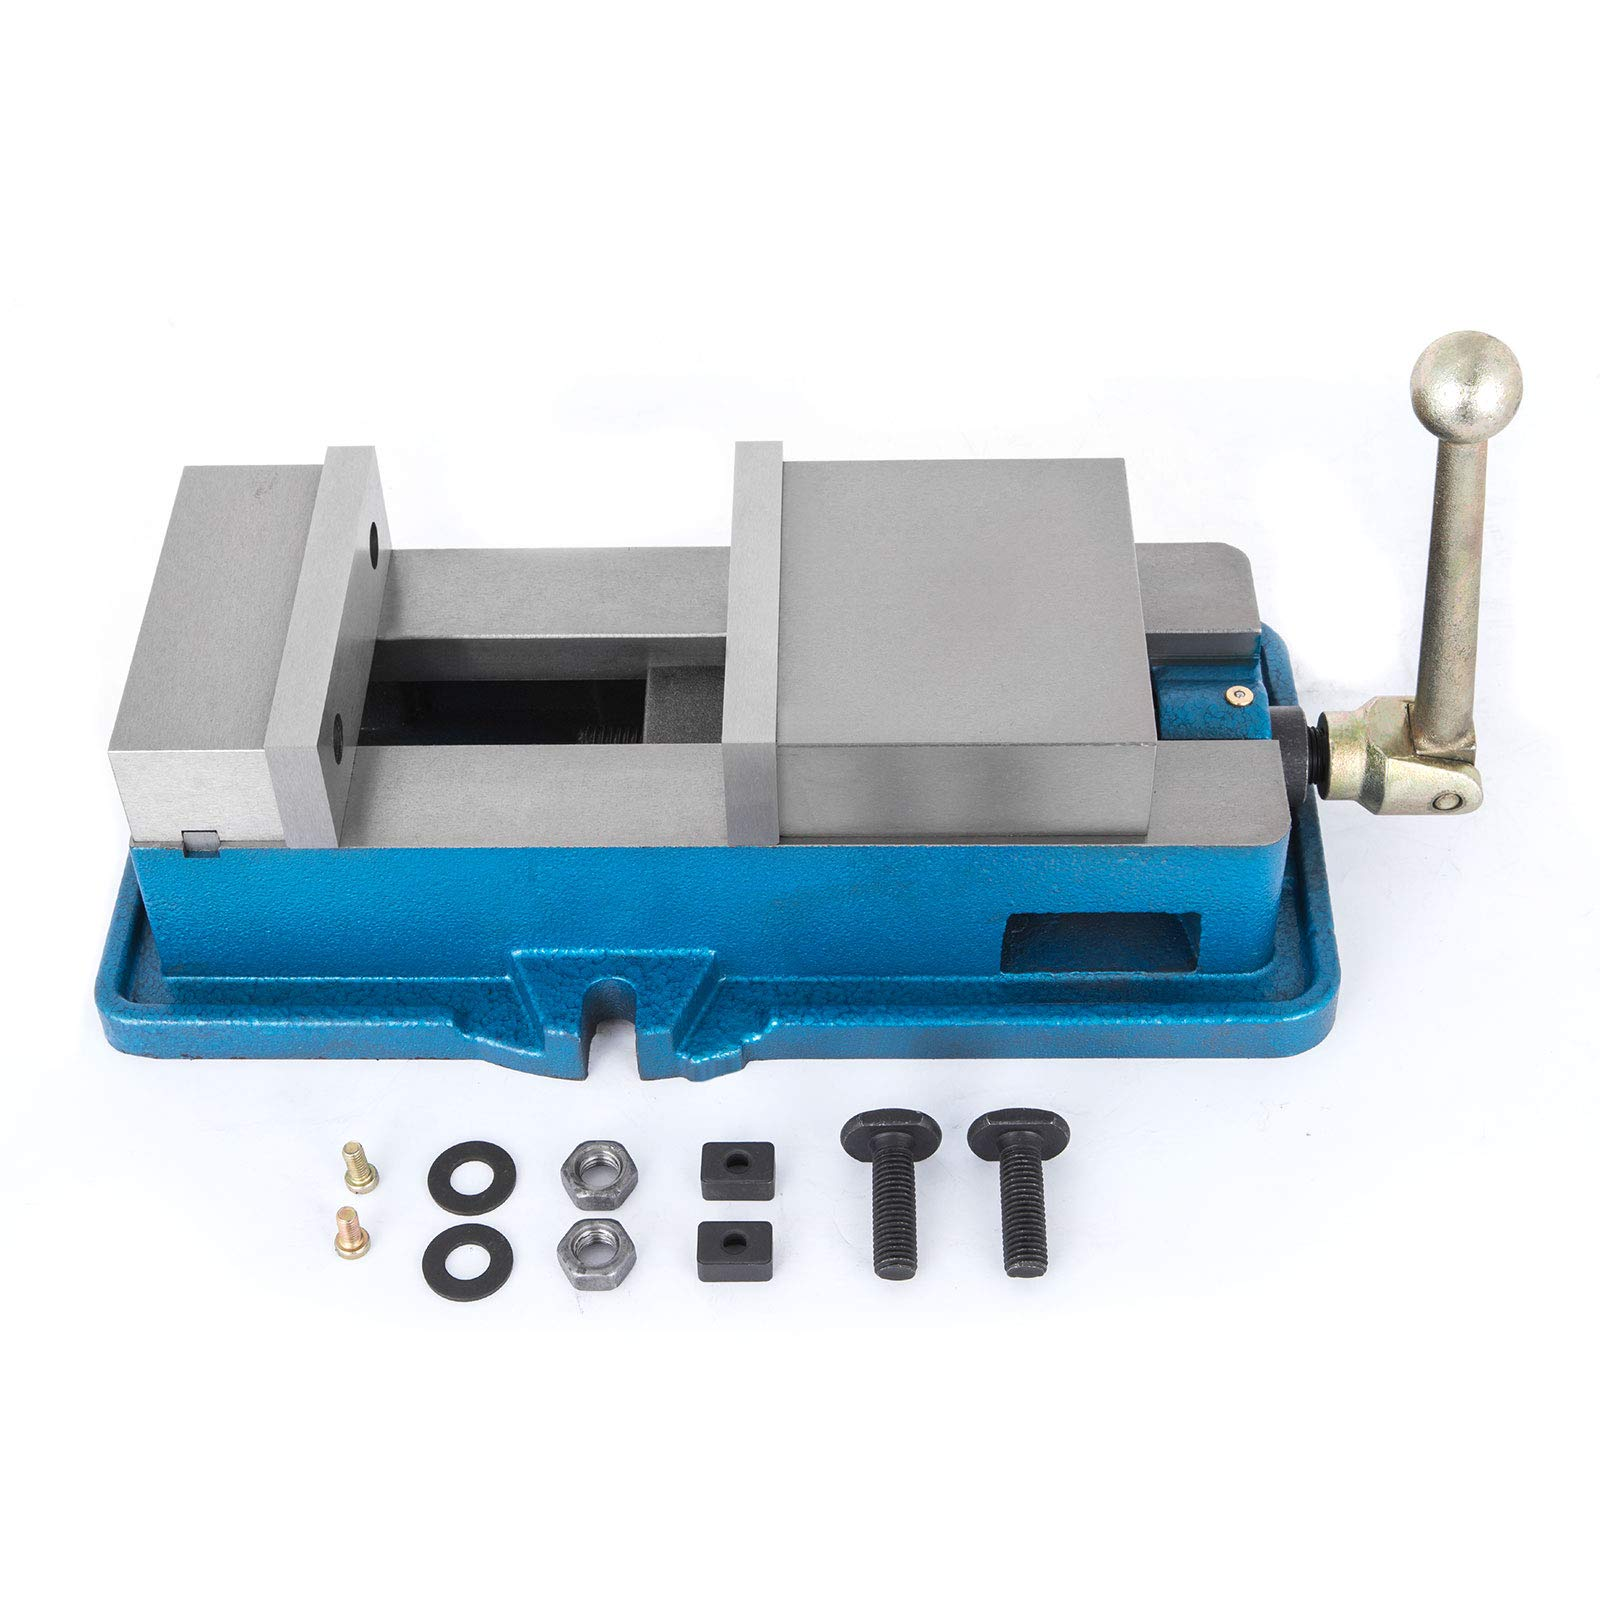 Happybuy 3'' Precision Milling Machine lock Down Vise Milling Table with 3 Inch Jaw Width Vise Accu Lock Vise Bench Clamp Clamping Vice Precision Milling Drilling Machine Vise (3'' Jaw Width)